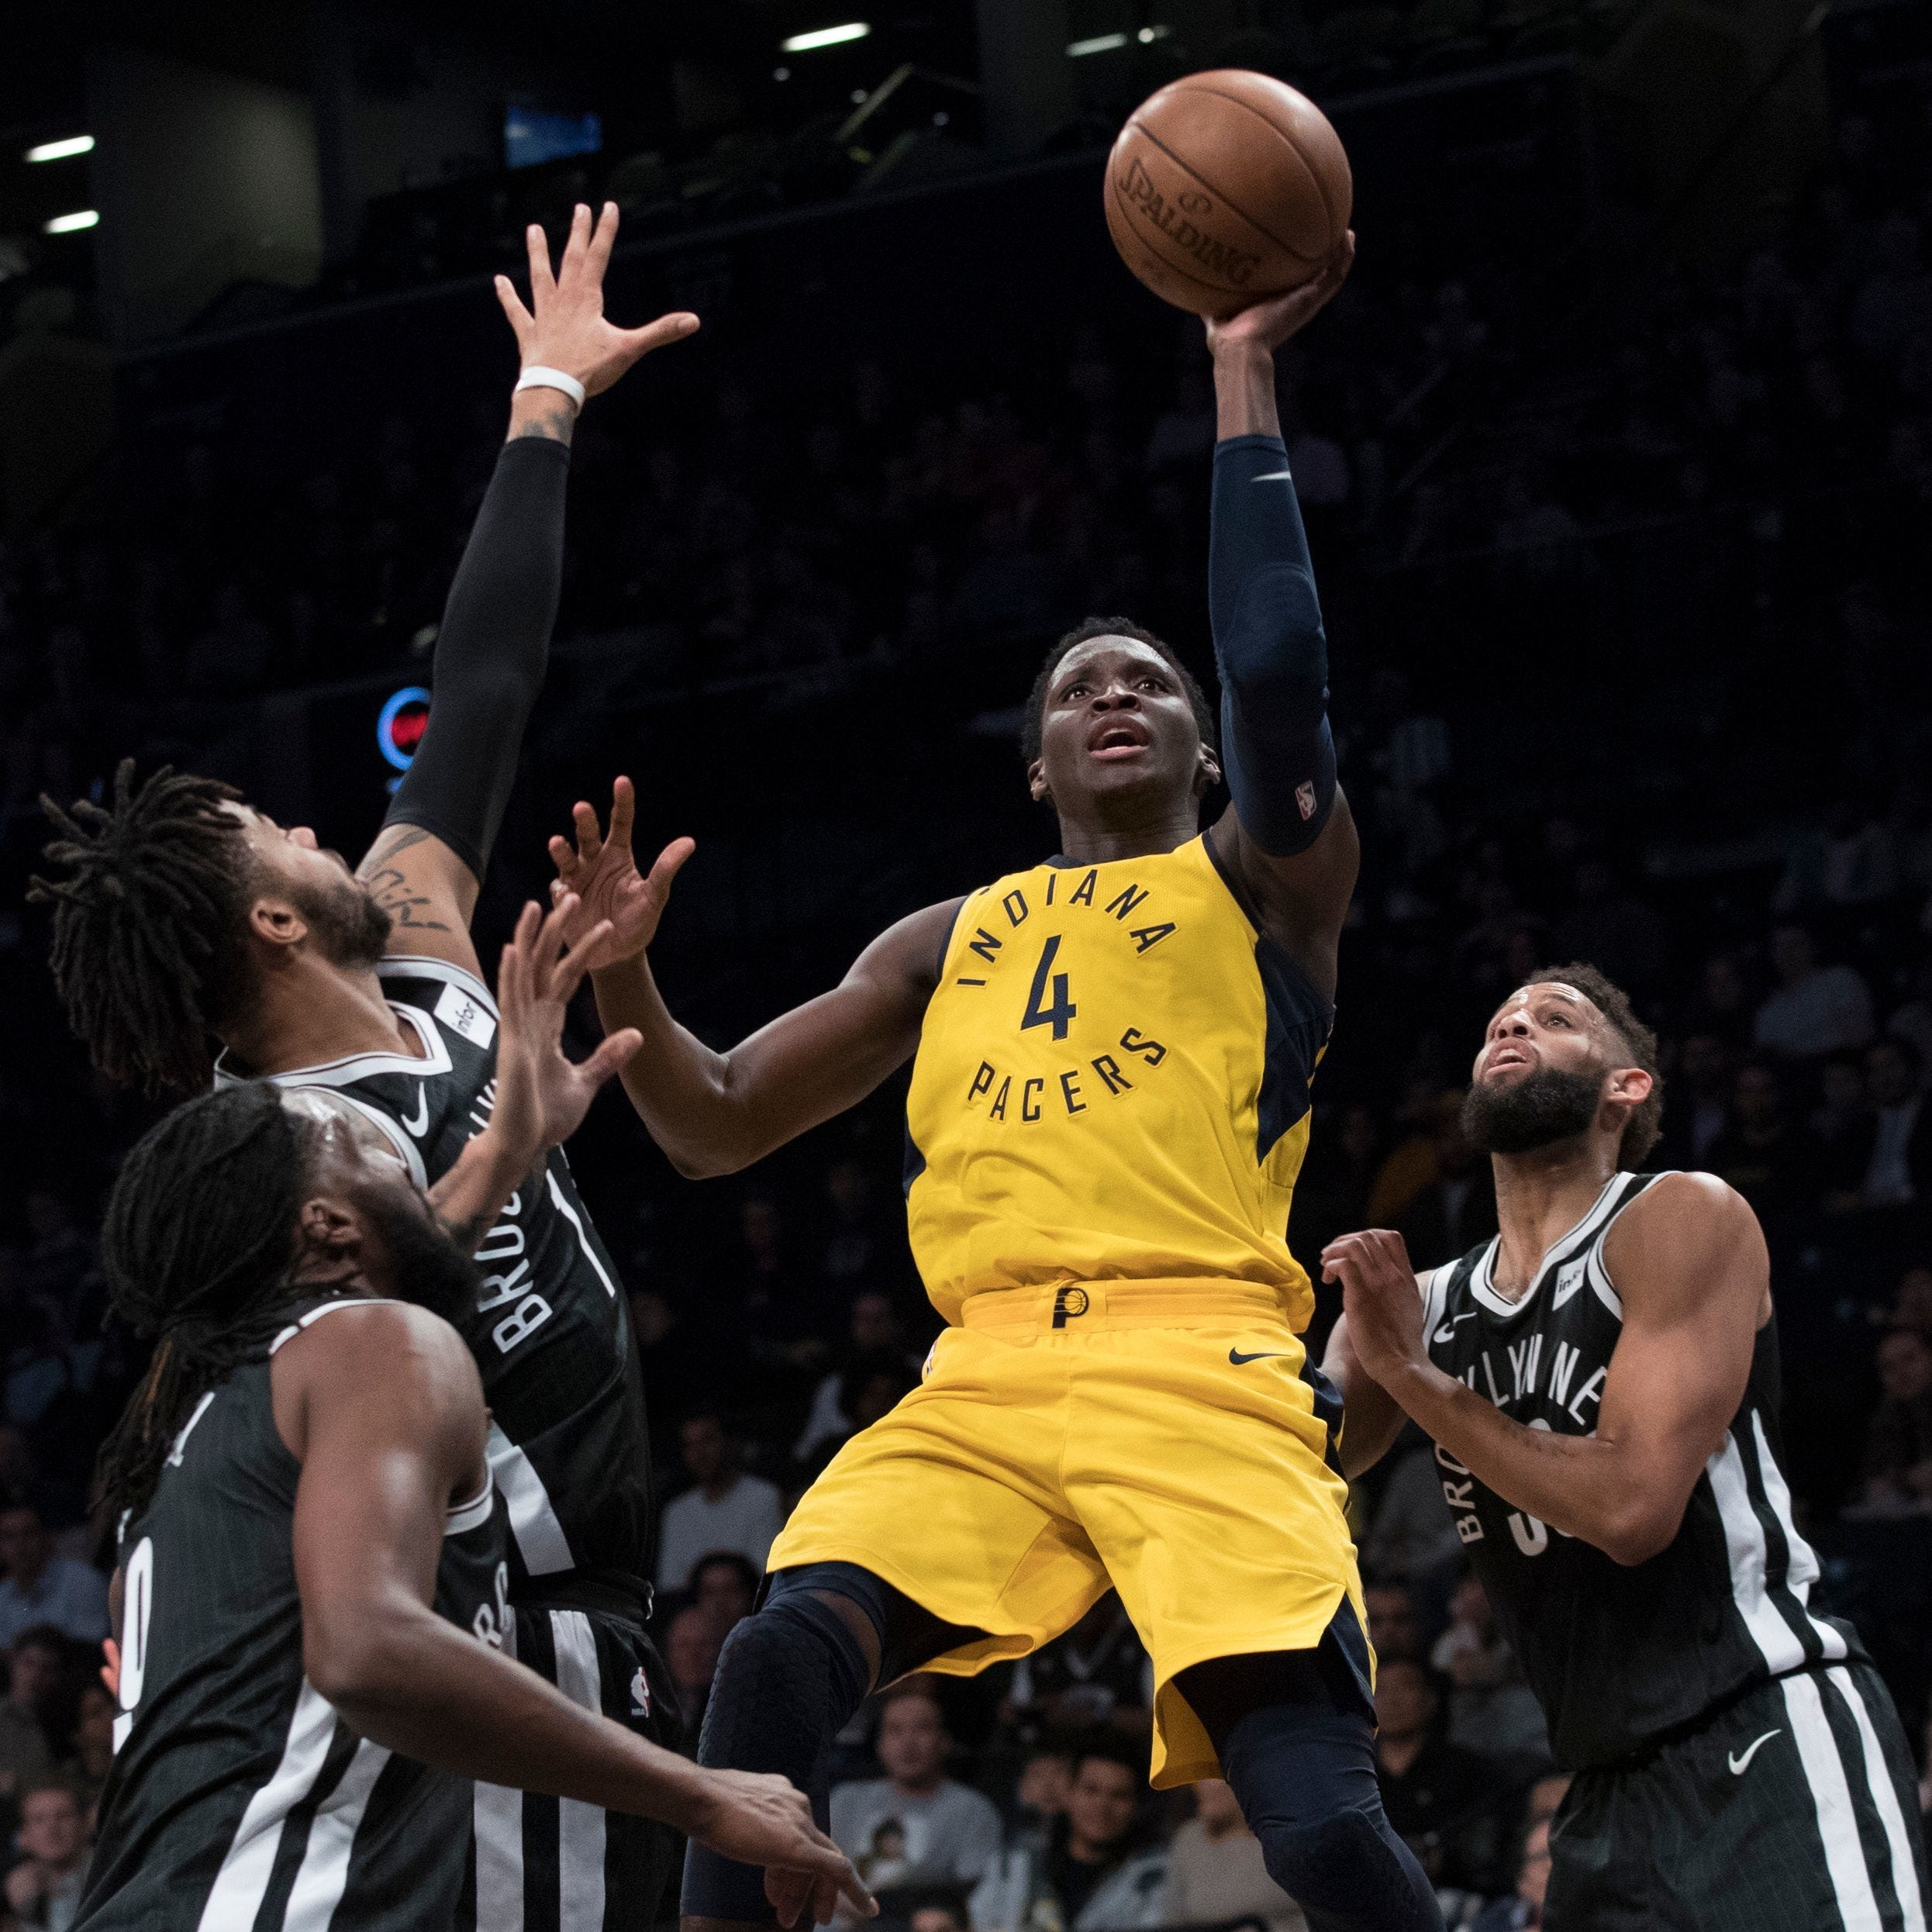 Matchup preview: What to watch as Pacers try to rebound vs. Nets